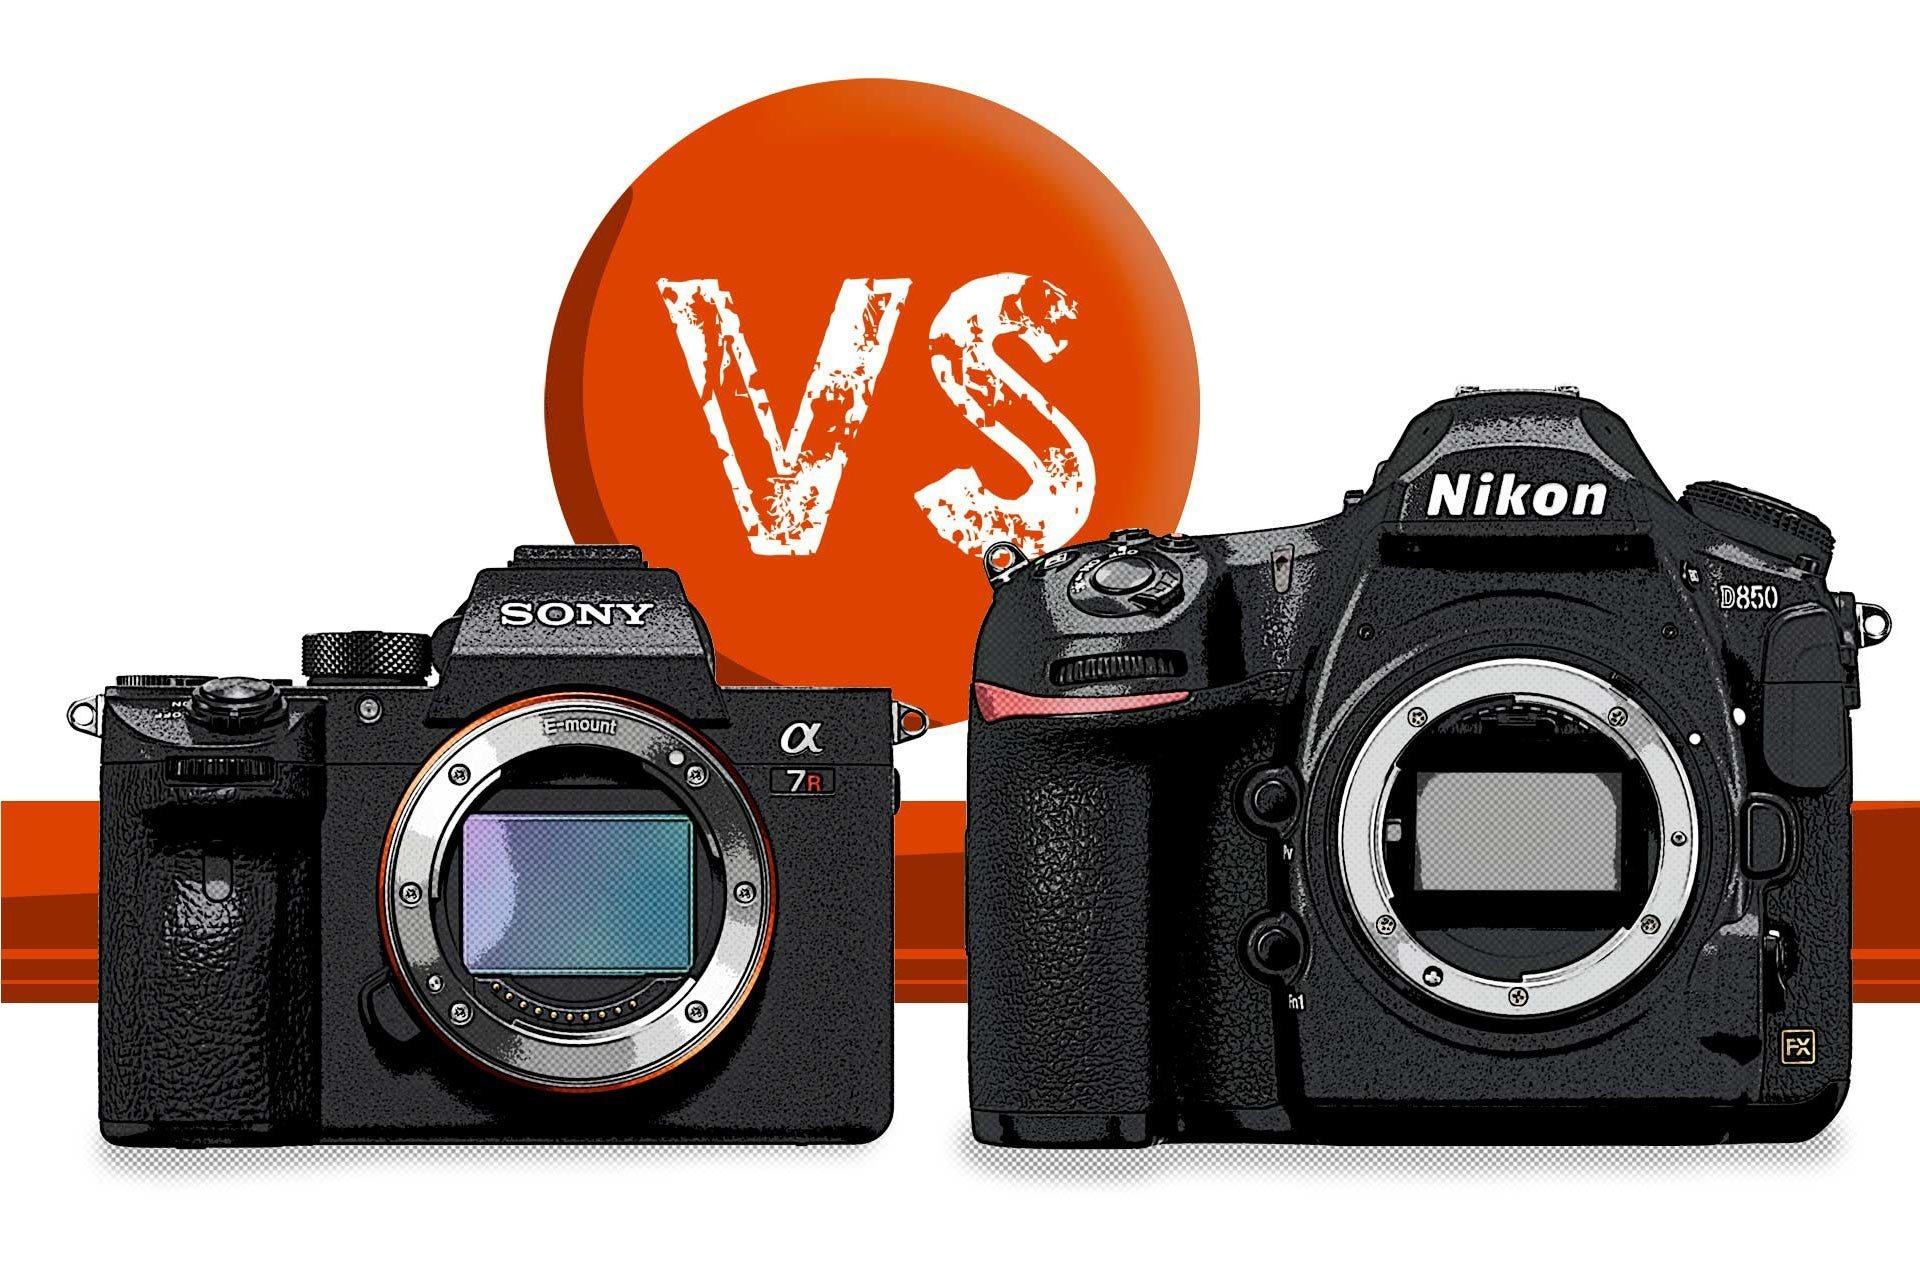 Sony A7R III vs Nikon D850: Which Should You Buy? – Light And Matter